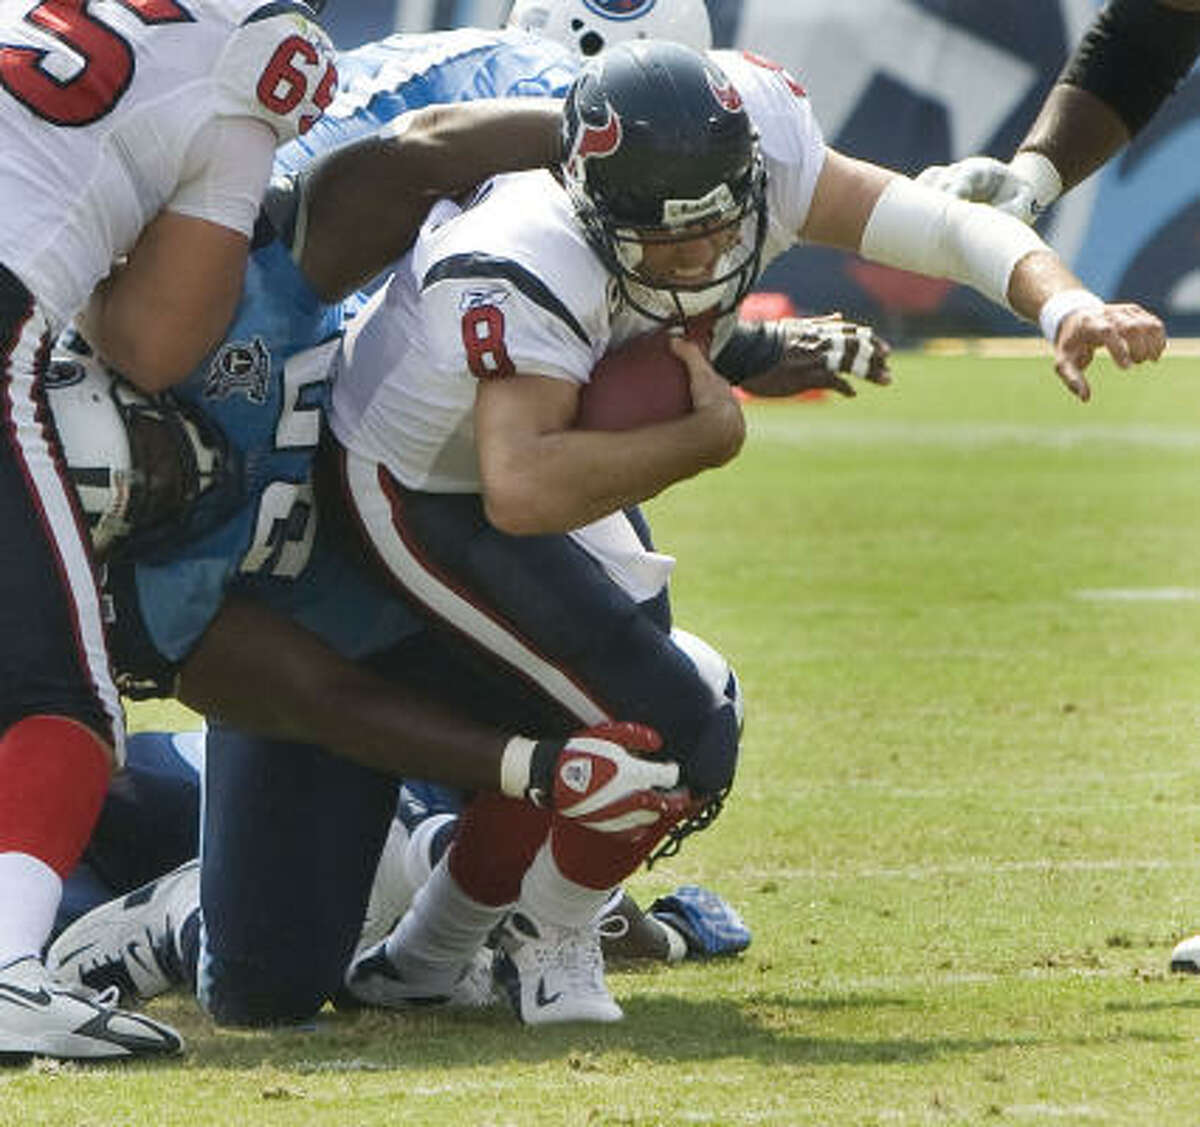 Sept. 21, 2008: Texans quarterback Matt Schaub threw three interceptions and was sacked three times in a 31-12 loss in Nashville. It was the Texans' first game since Hurricane Ike ripped through the Houston area.